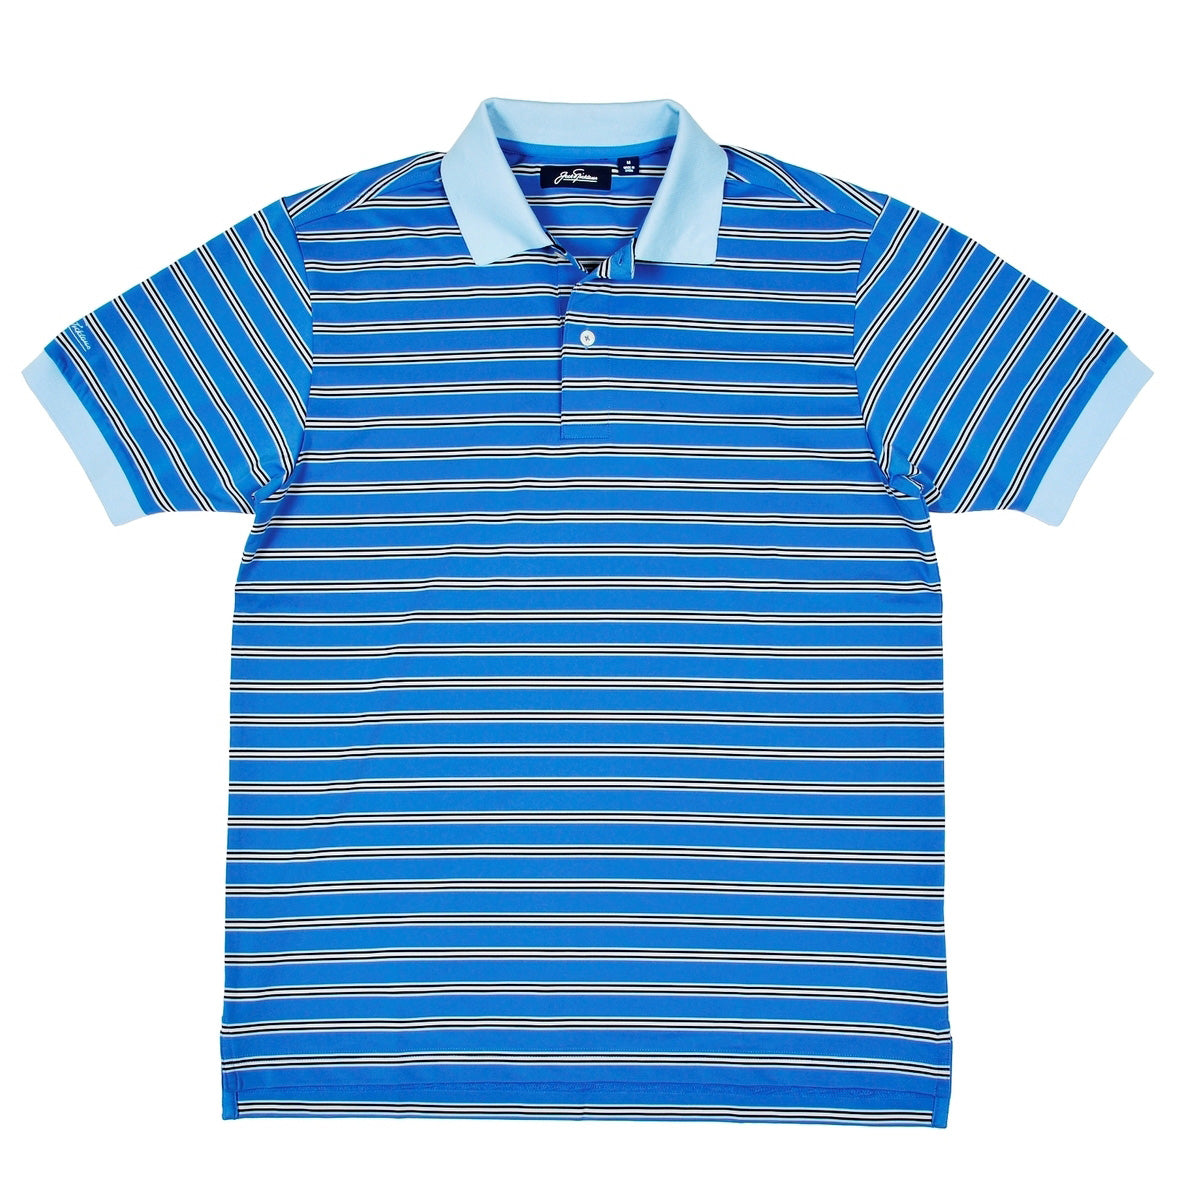 Dry Range Regimental Stripe Golf Polo Shirt - Blue